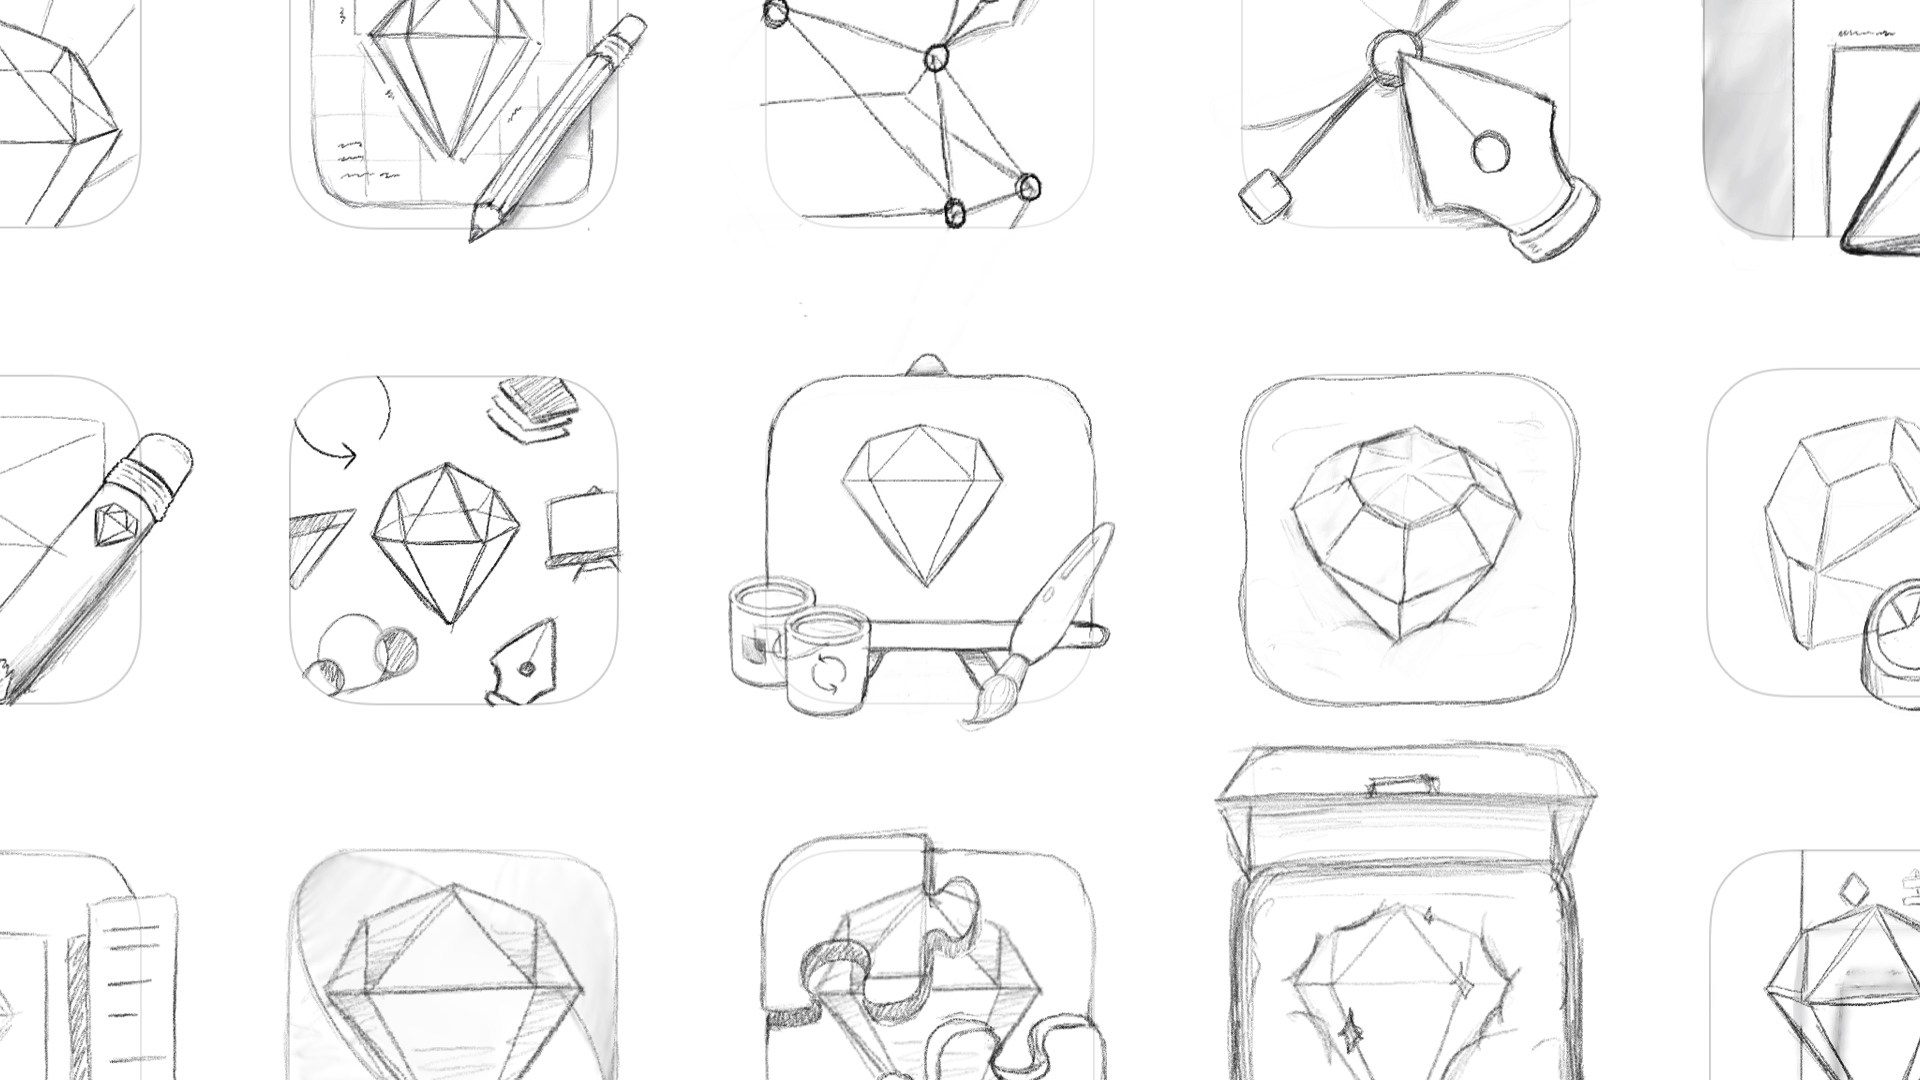 An image showing some of the initial idea sketches that Prekesh created.